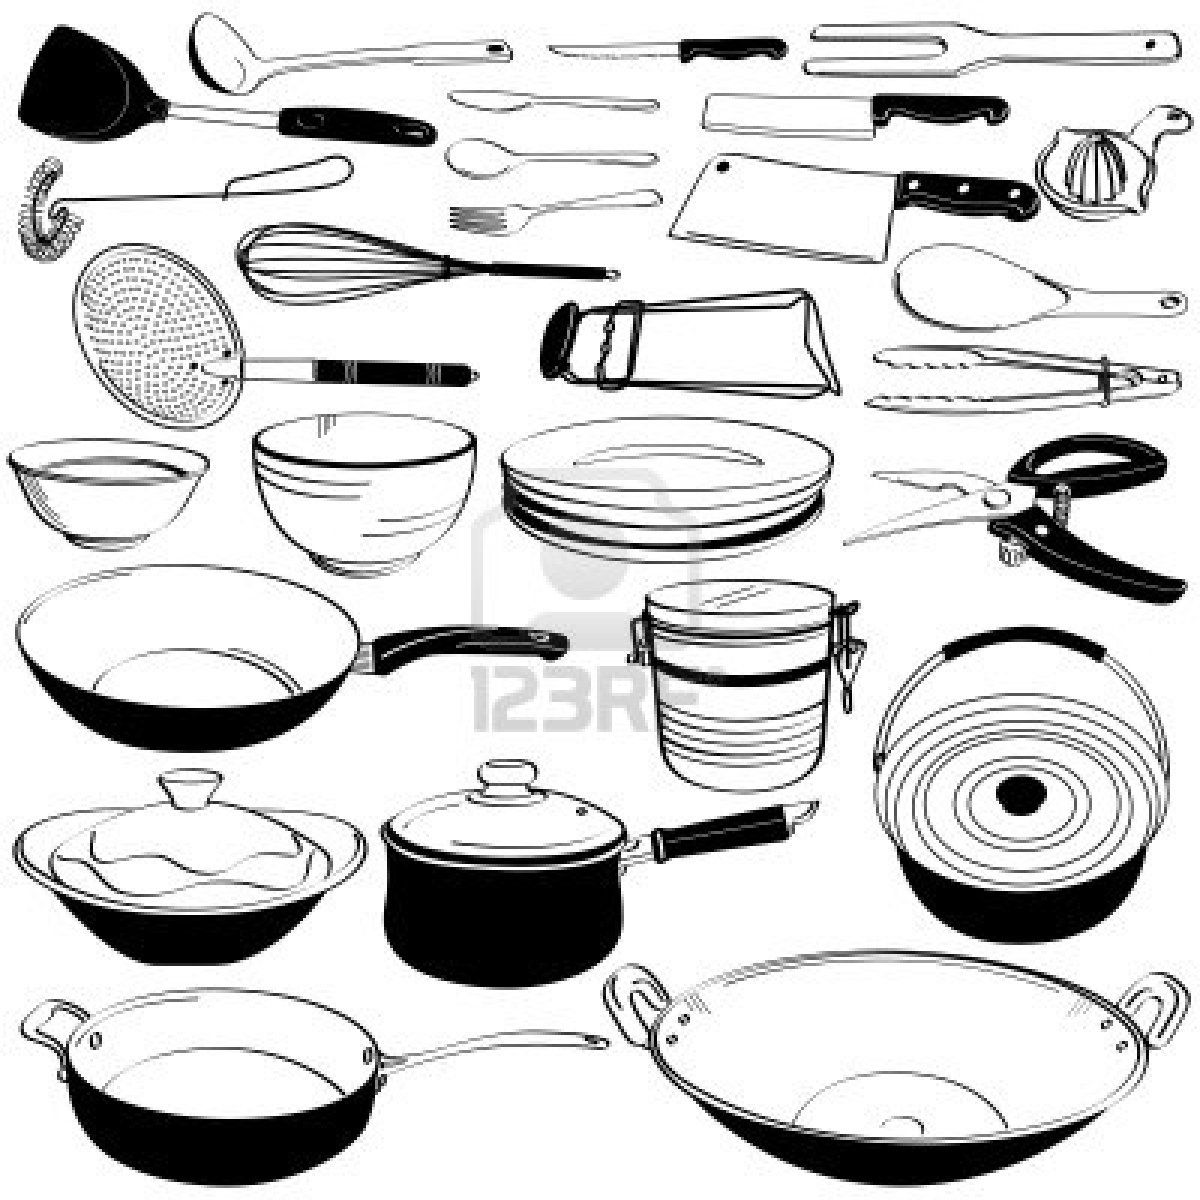 Baking Tools And Equipment Baking Tools Clipartkitchen Tool Utensil Equipment Doodle Drawing